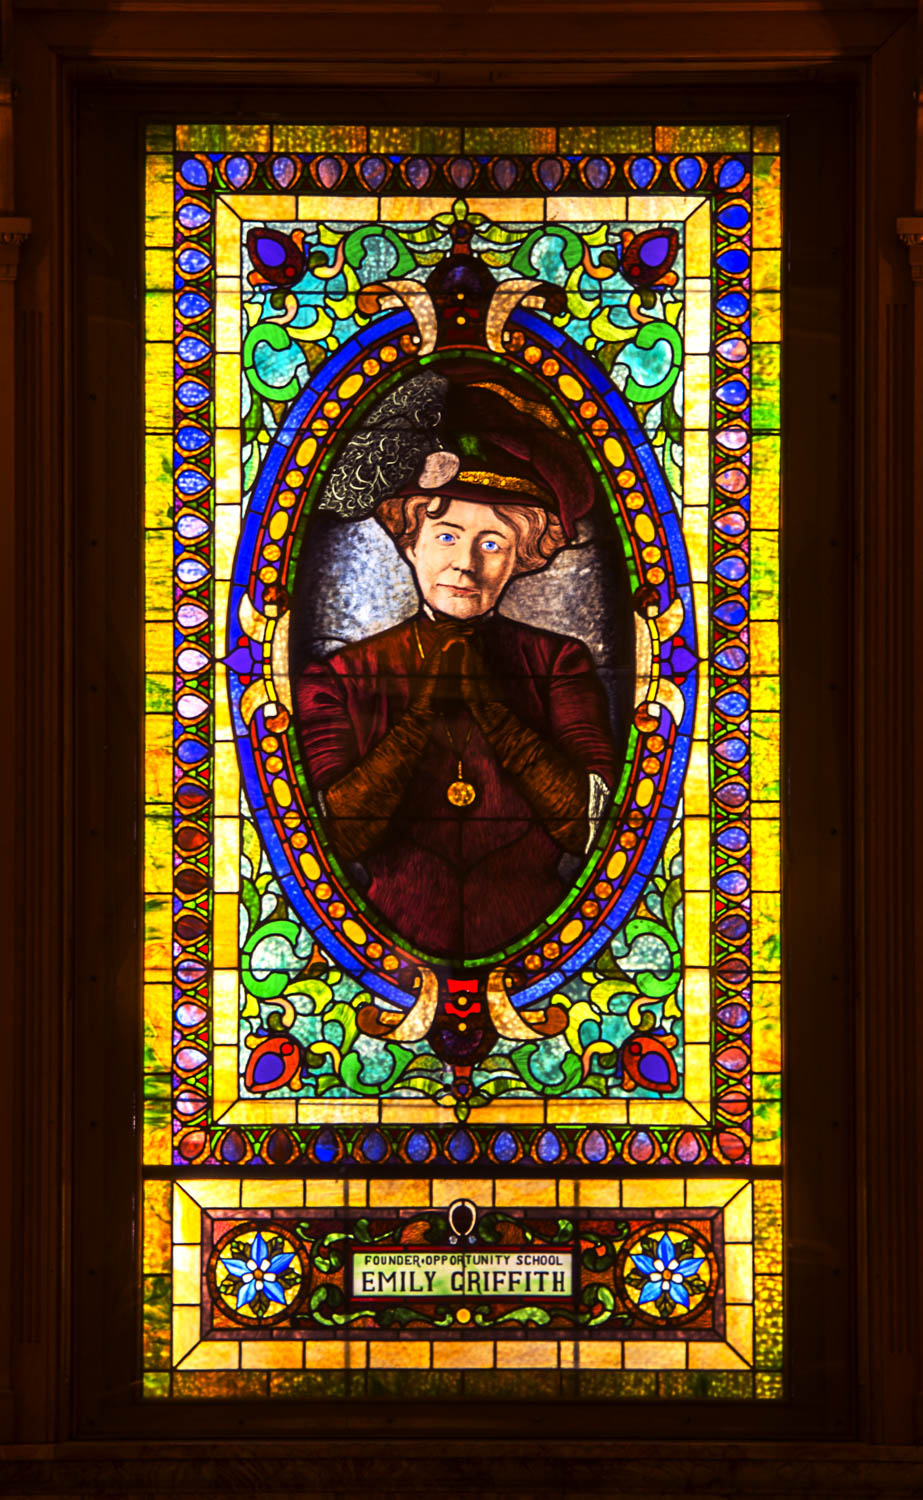 Emily Griffith Stained Glass Window